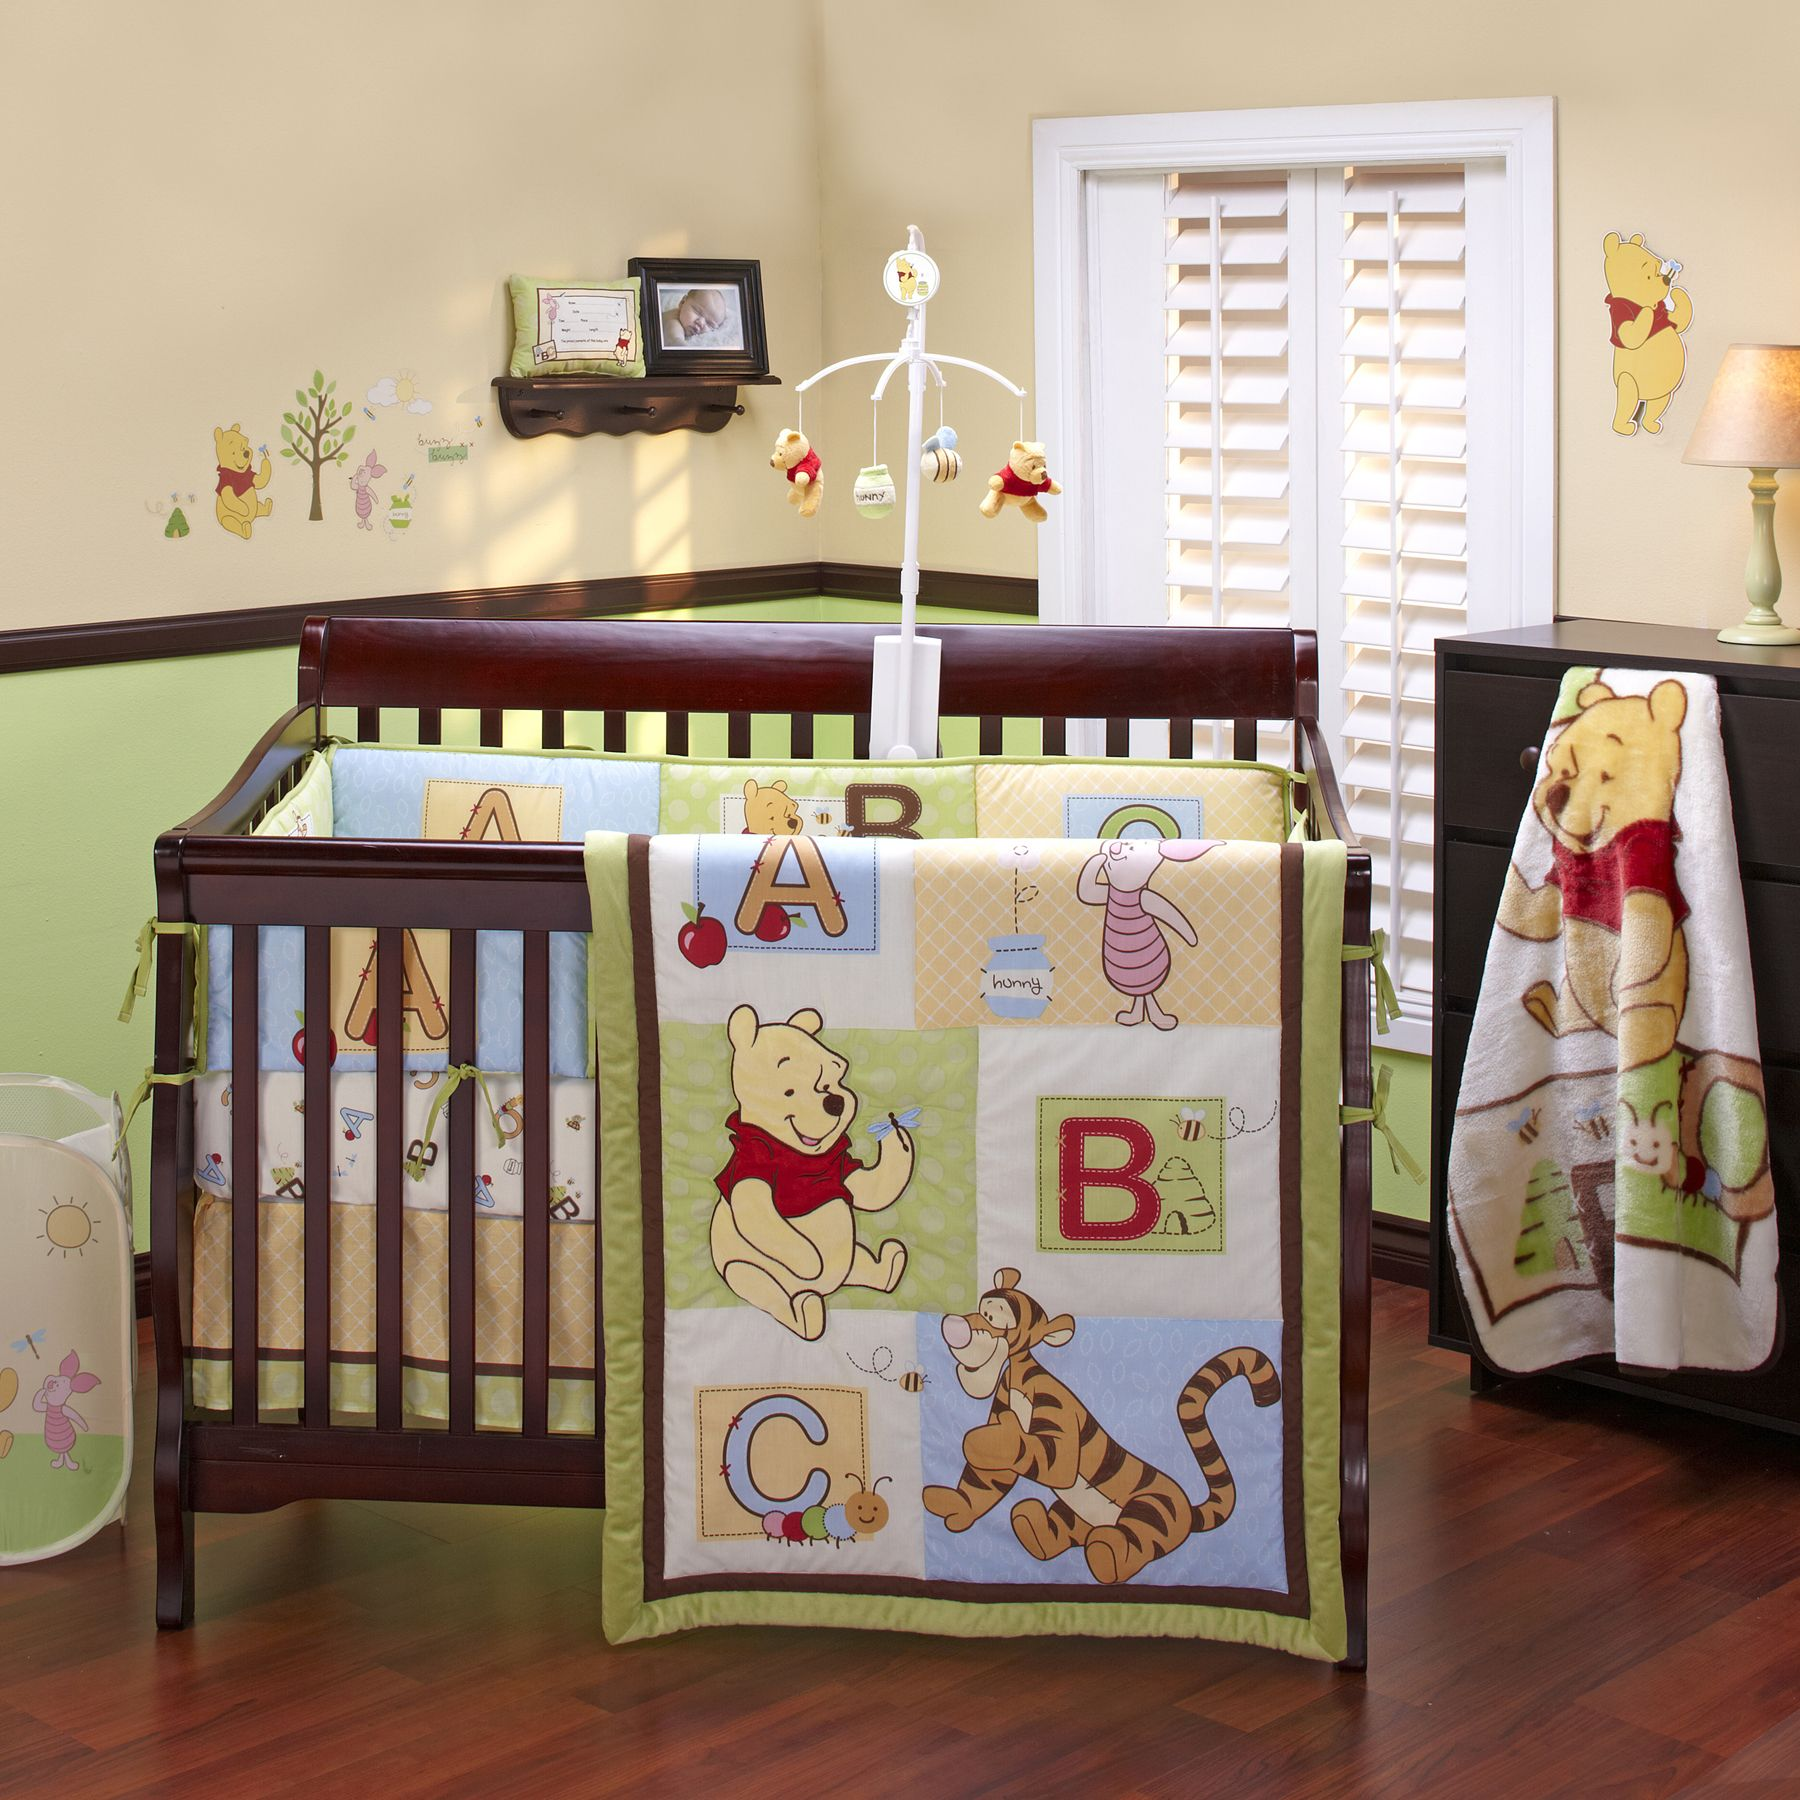 20 Ideas For The Nursery Your Dreams